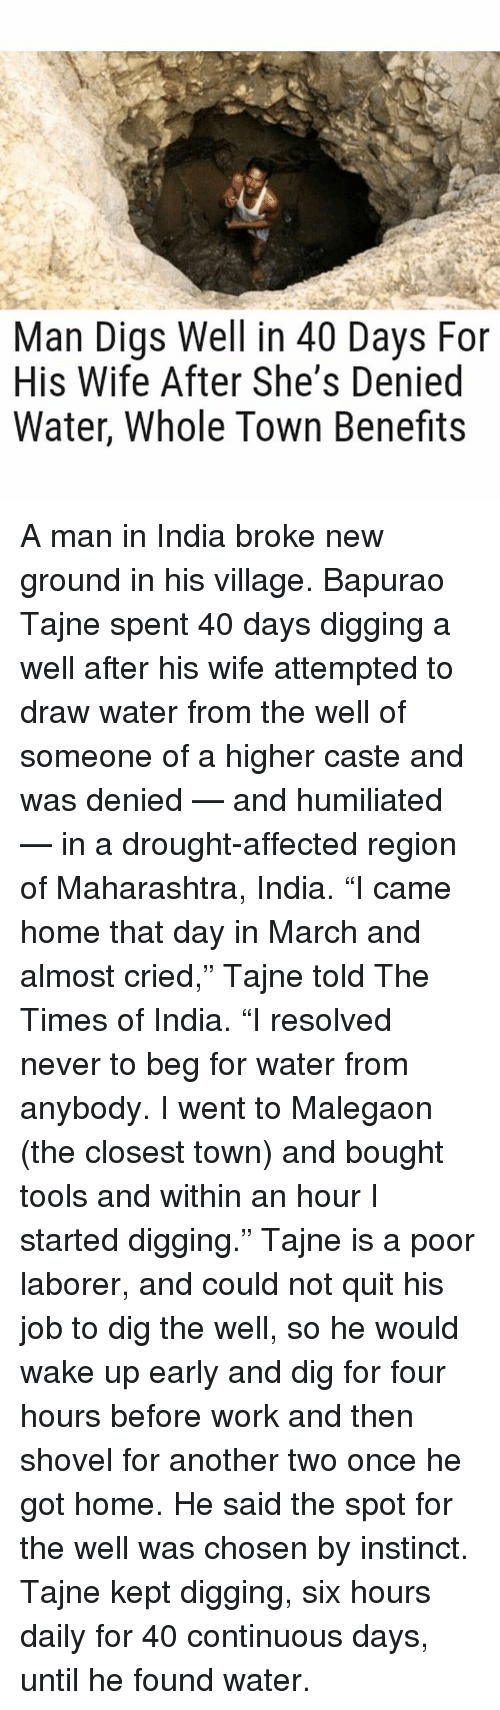 """maharashtra: Man Digs Well in 40 Days For  His Wife After She's Denied  Water, Whole Town Benefits A man in India broke new ground in his village. Bapurao Tajne spent 40 days digging a well after his wife attempted to draw water from the well of someone of a higher caste and was denied — and humiliated — in a drought-affected region of Maharashtra, India. """"I came home that day in March and almost cried,"""" Tajne told The Times of India. """"I resolved never to beg for water from anybody. I went to Malegaon (the closest town) and bought tools and within an hour I started digging."""" Tajne is a poor laborer, and could not quit his job to dig the well, so he would wake up early and dig for four hours before work and then shovel for another two once he got home. He said the spot for the well was chosen by instinct. Tajne kept digging, six hours daily for 40 continuous days, until he found water."""